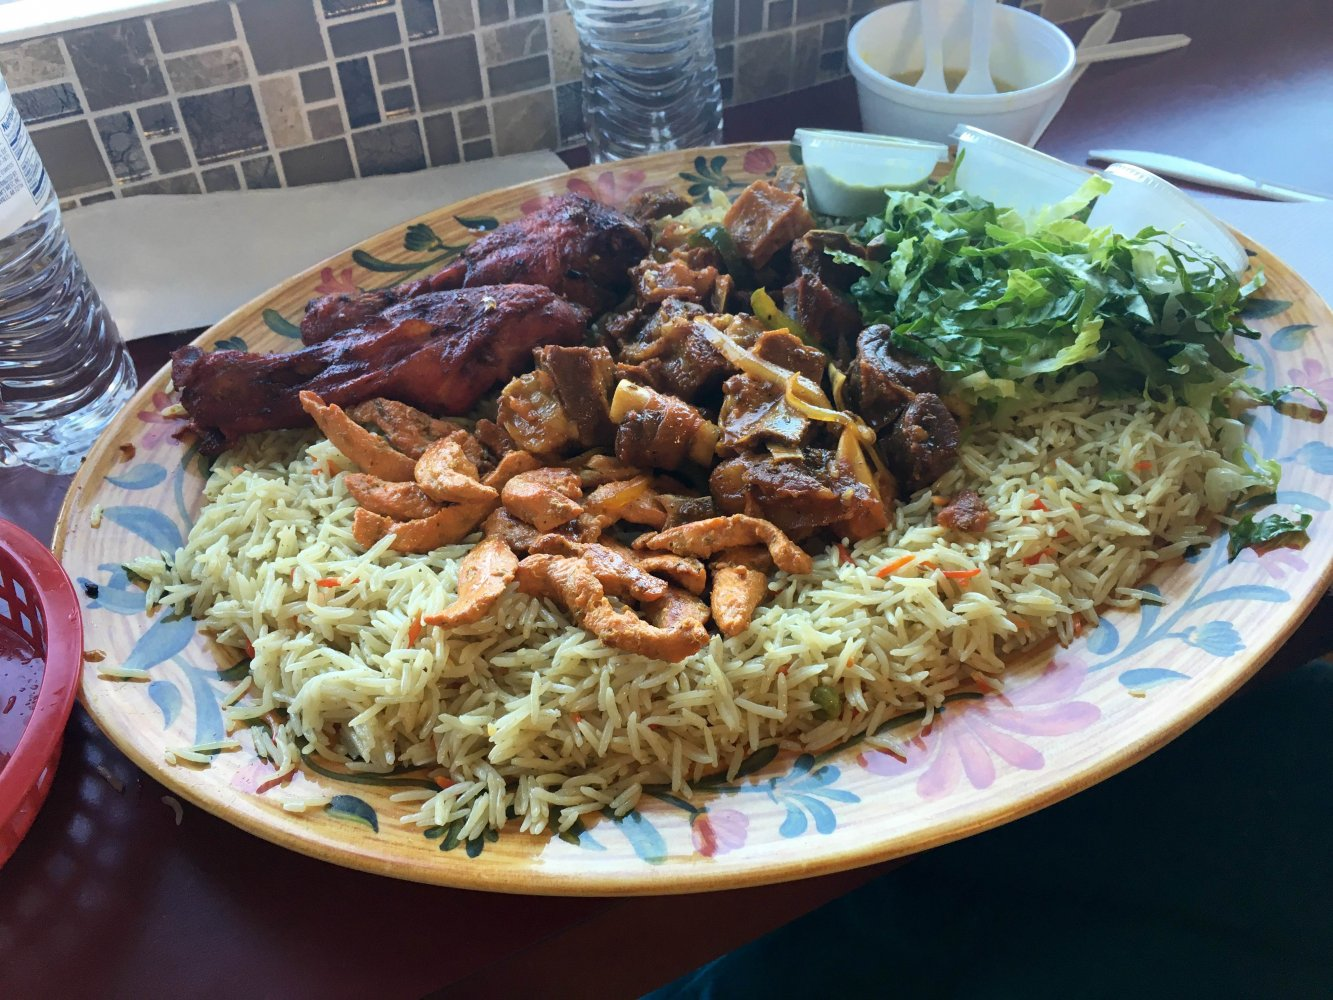 Rugsan cuisine african restaurant high plains reader for African cuisine restaurant